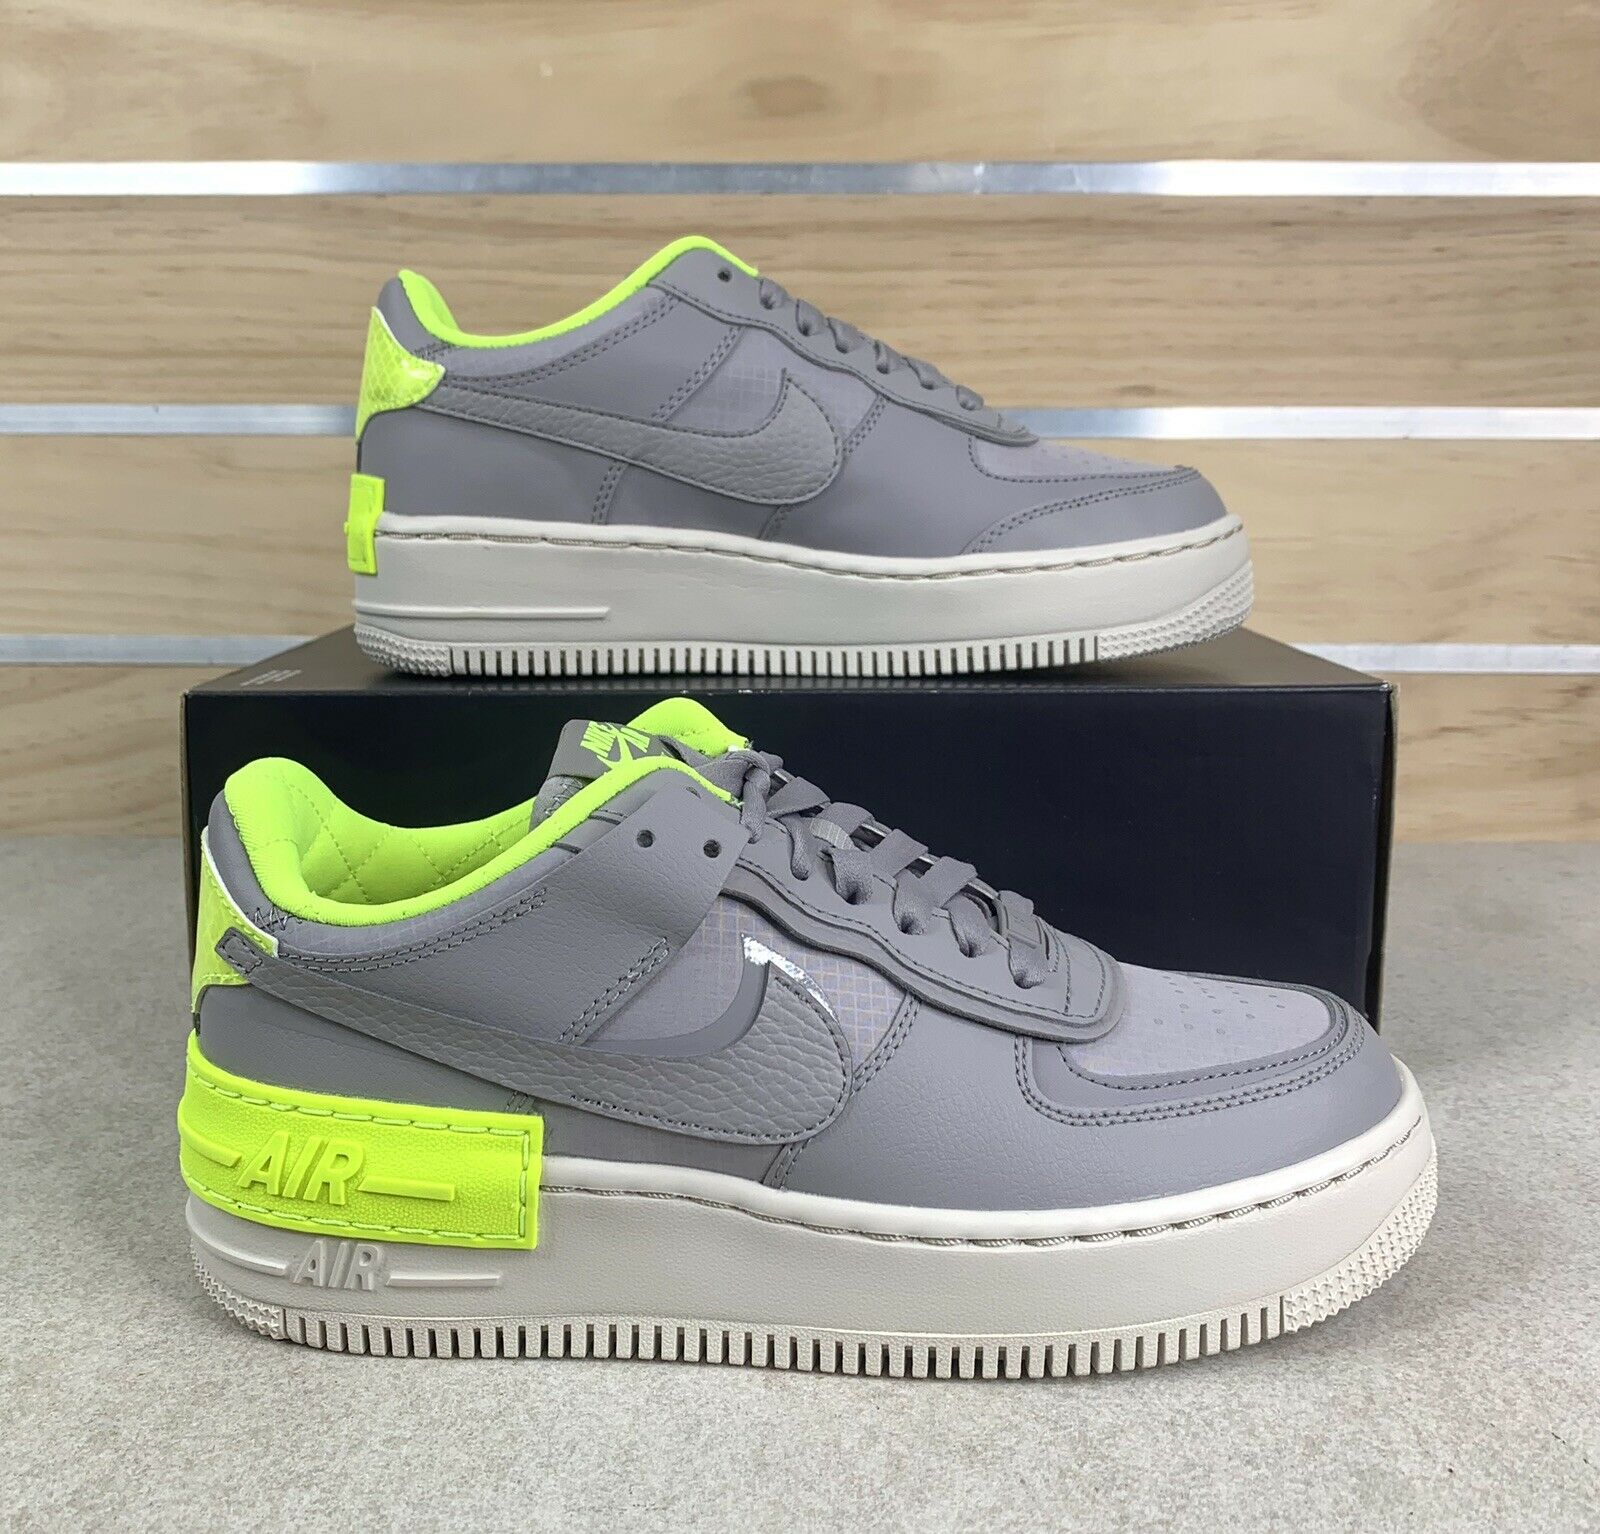 reembolso ducha Premonición  Nike Air Force 1 Shadow SE Women Atmosphere Grey Cq3317 002 Size 7 for sale  online | eBay